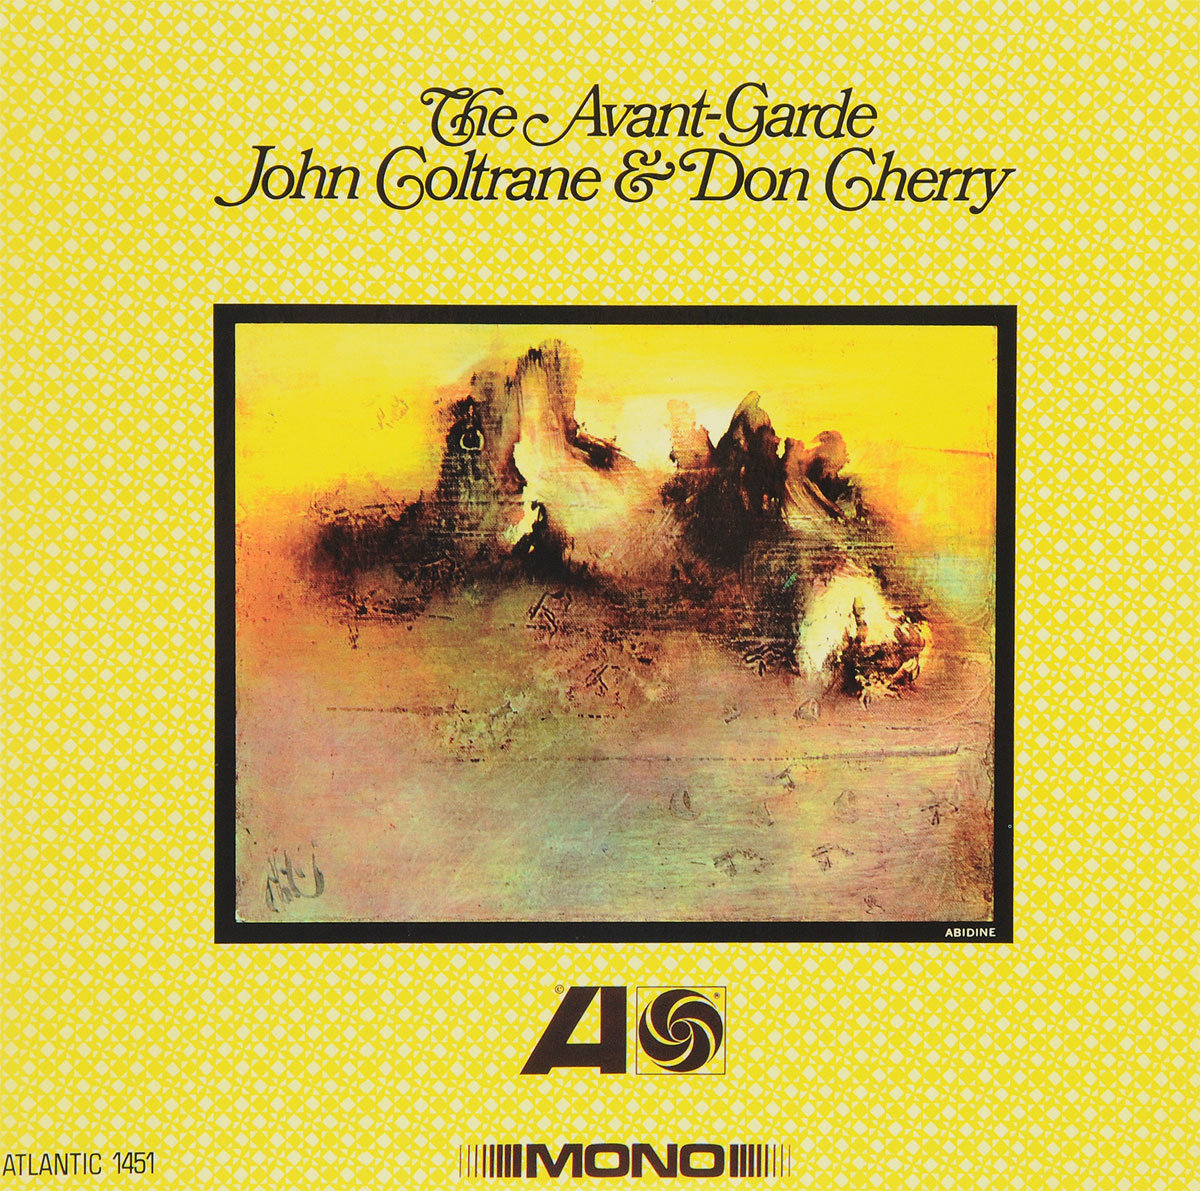 Джон Колтрейн,Дон Черри John Coltrane, Don Cherry. The Avant-Garde (LP) джон колтрейн маккой тайнер стив дэвис элвин джонс john coltrane my favorite things lp